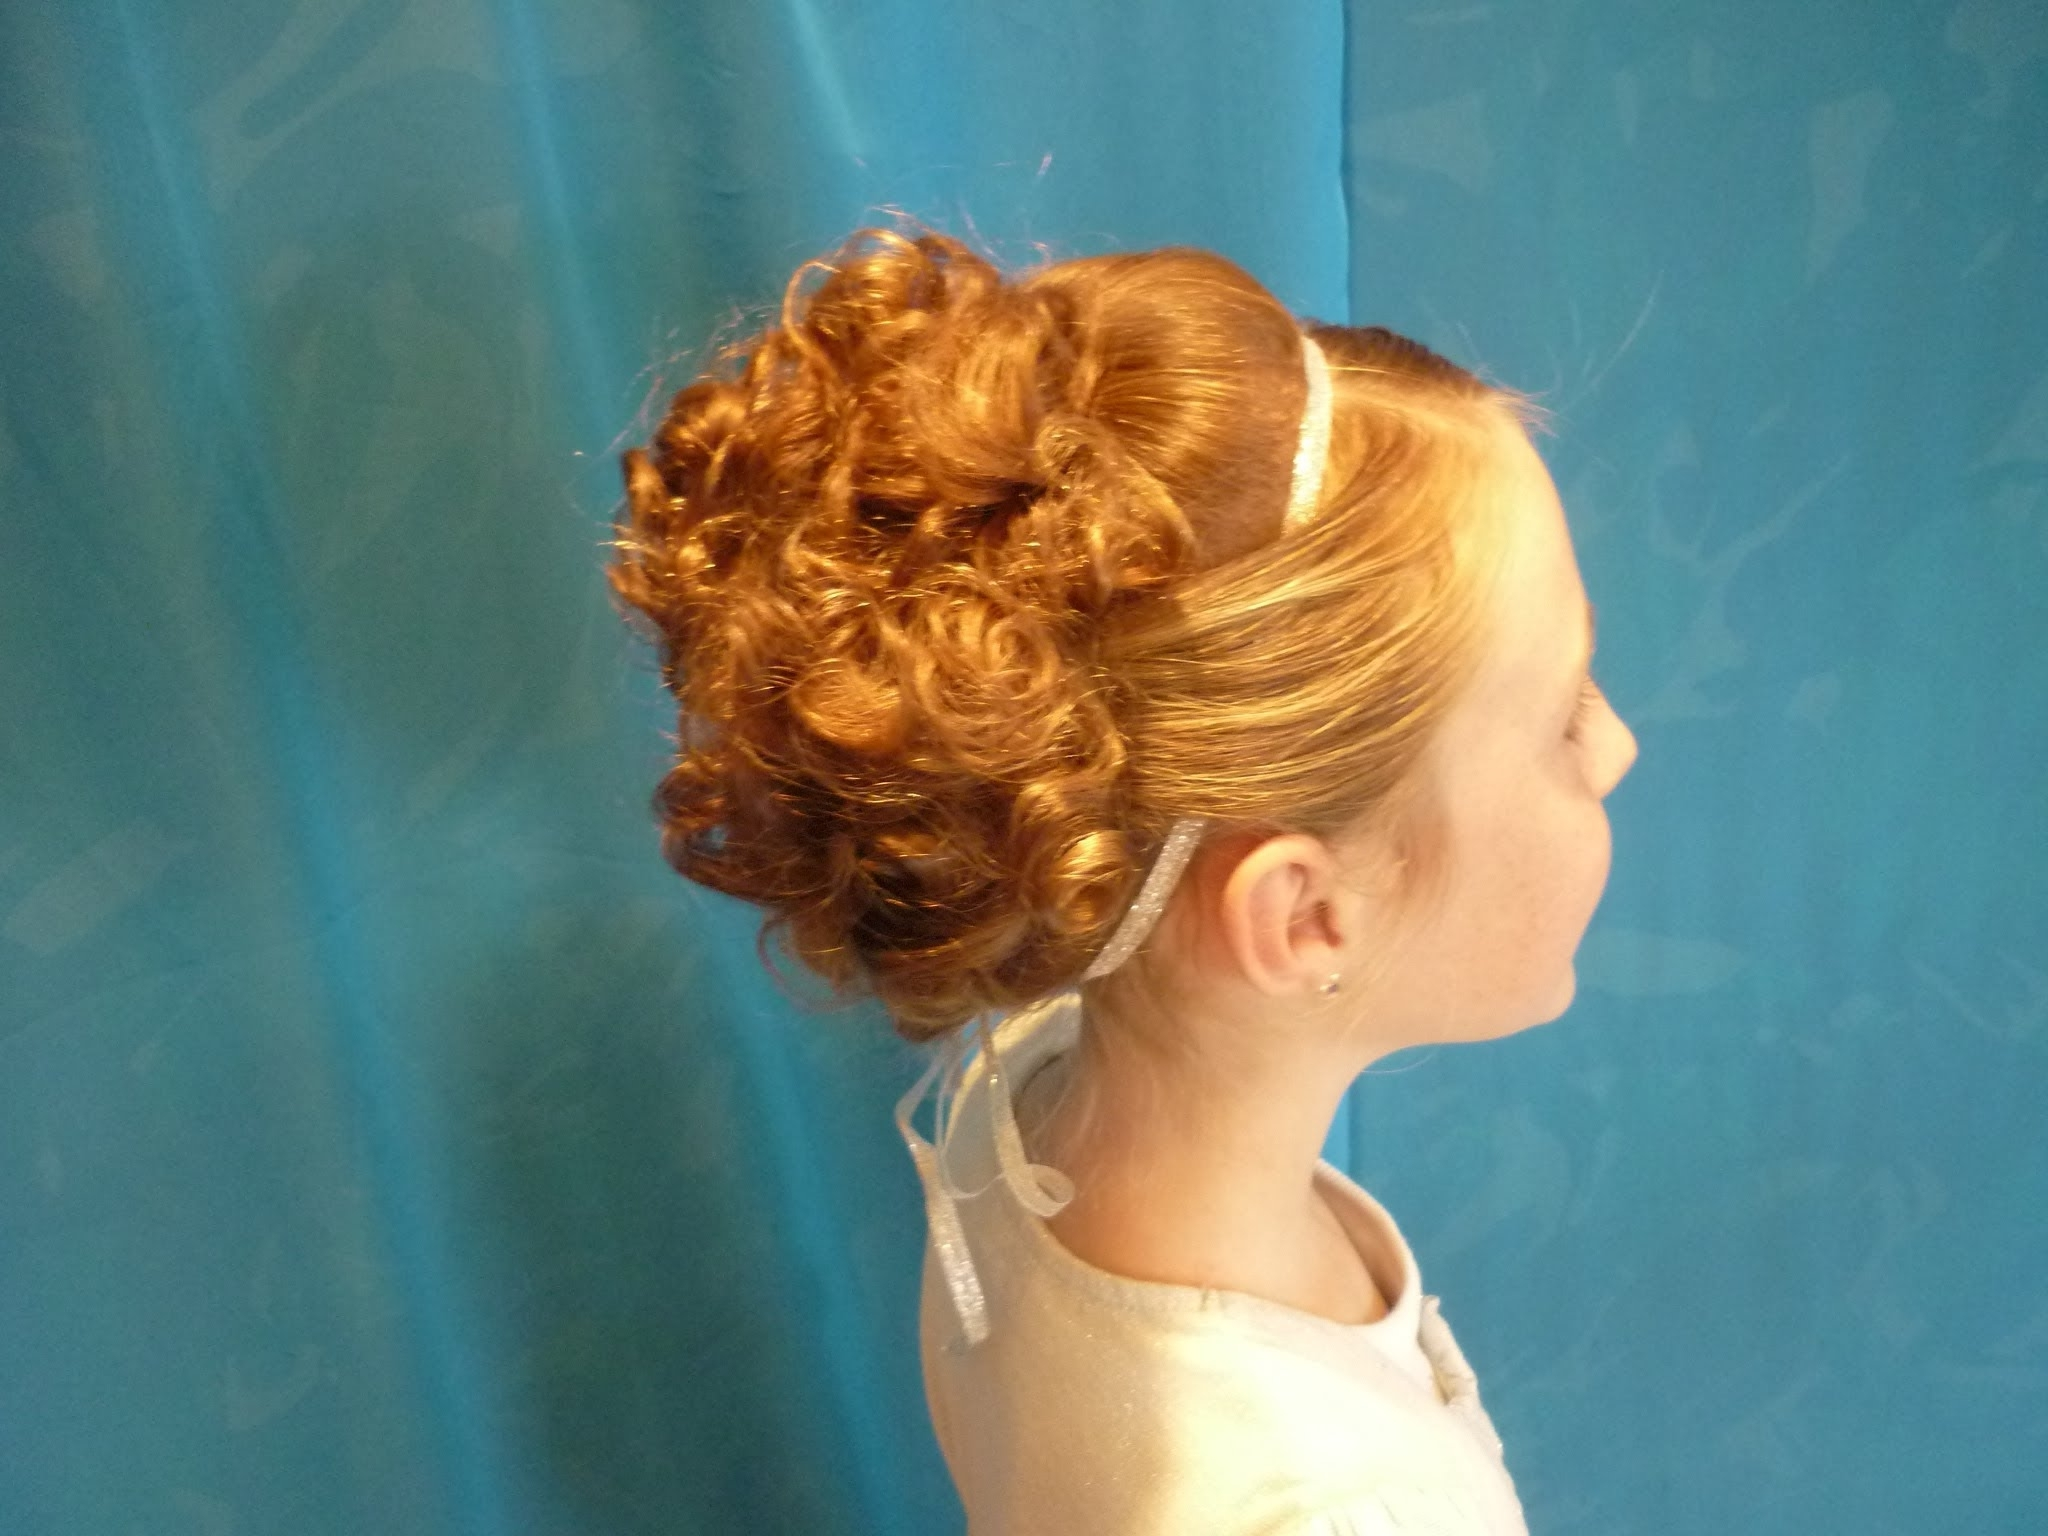 Elegant Updo With Curls For Medium Length Hair – Youtube With Regard To Curly Updo Hairstyles For Medium Length Hair (View 5 of 15)